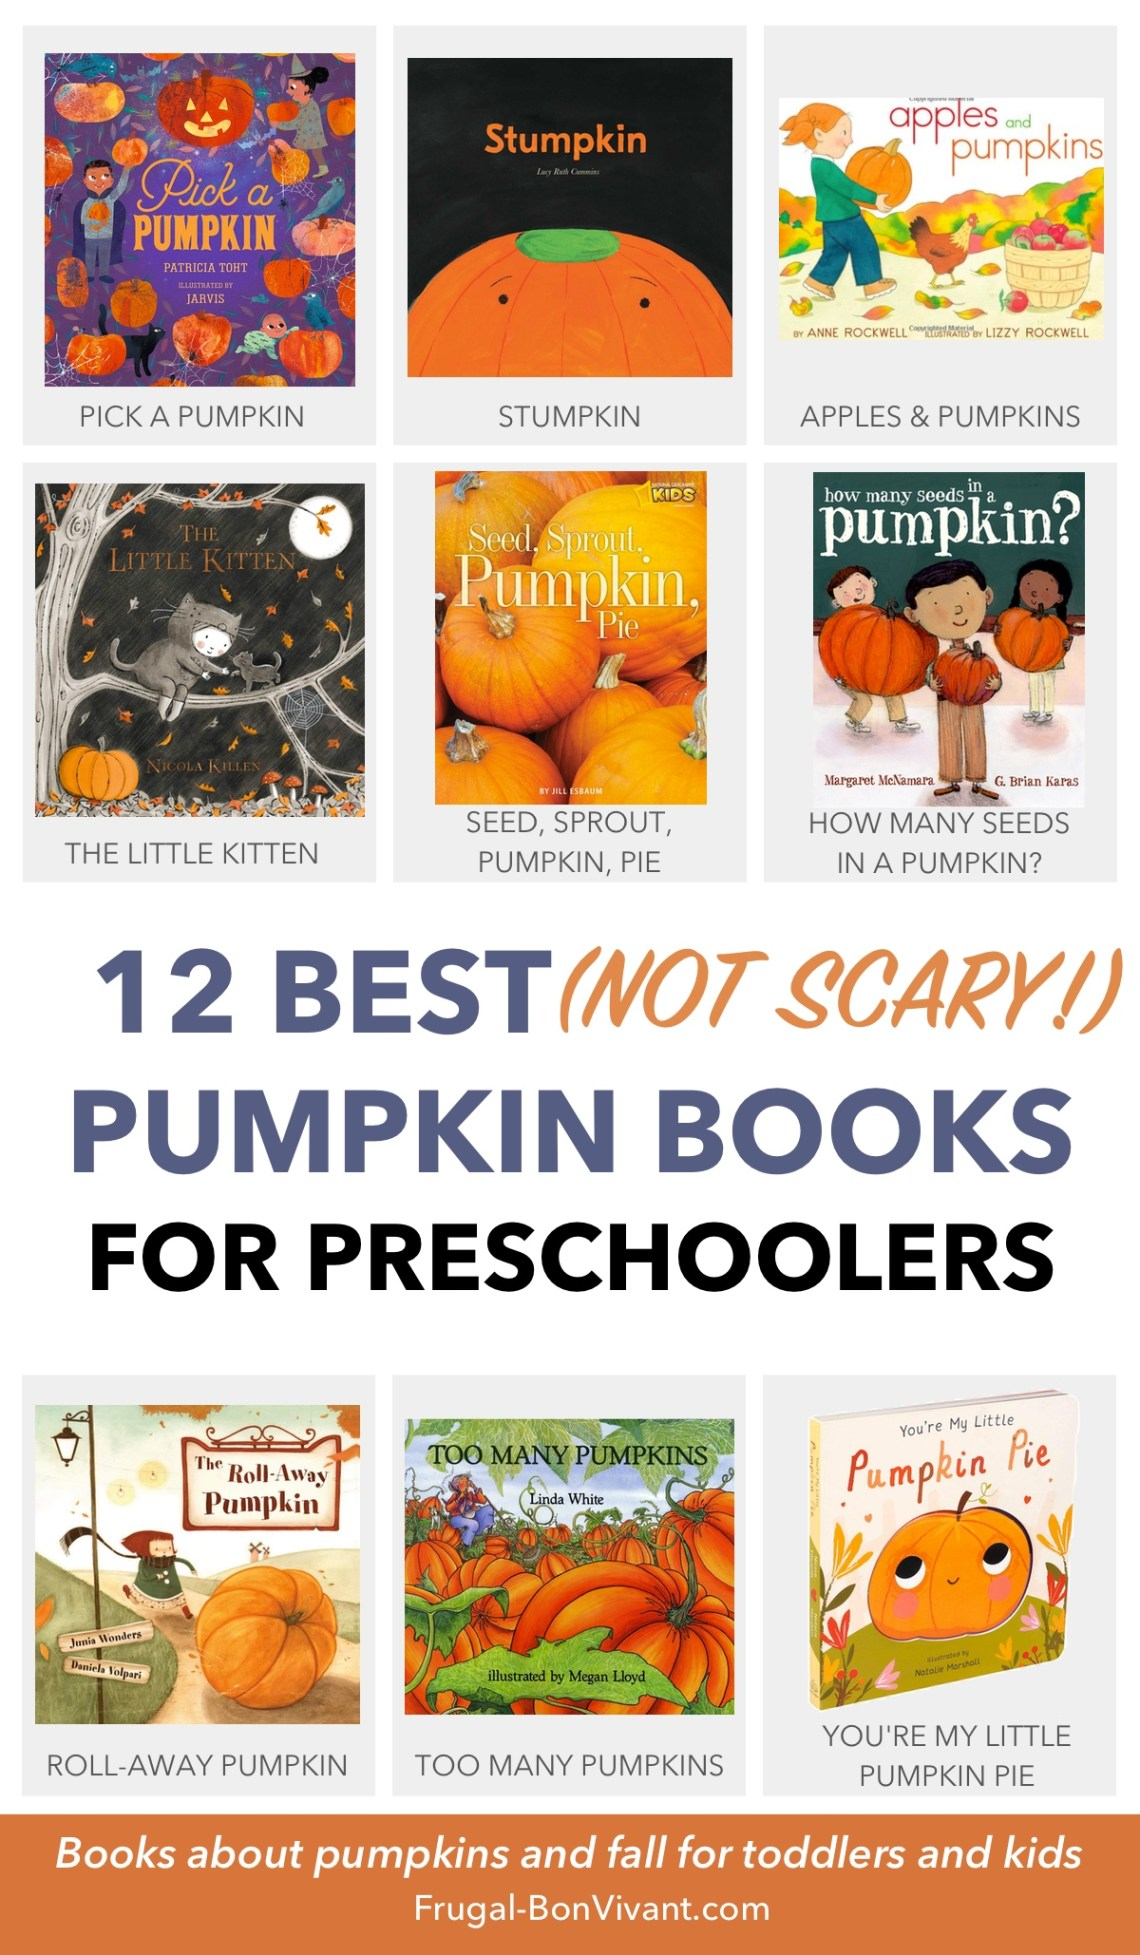 Pumpkin books for preschoolers, toddlers, and kids